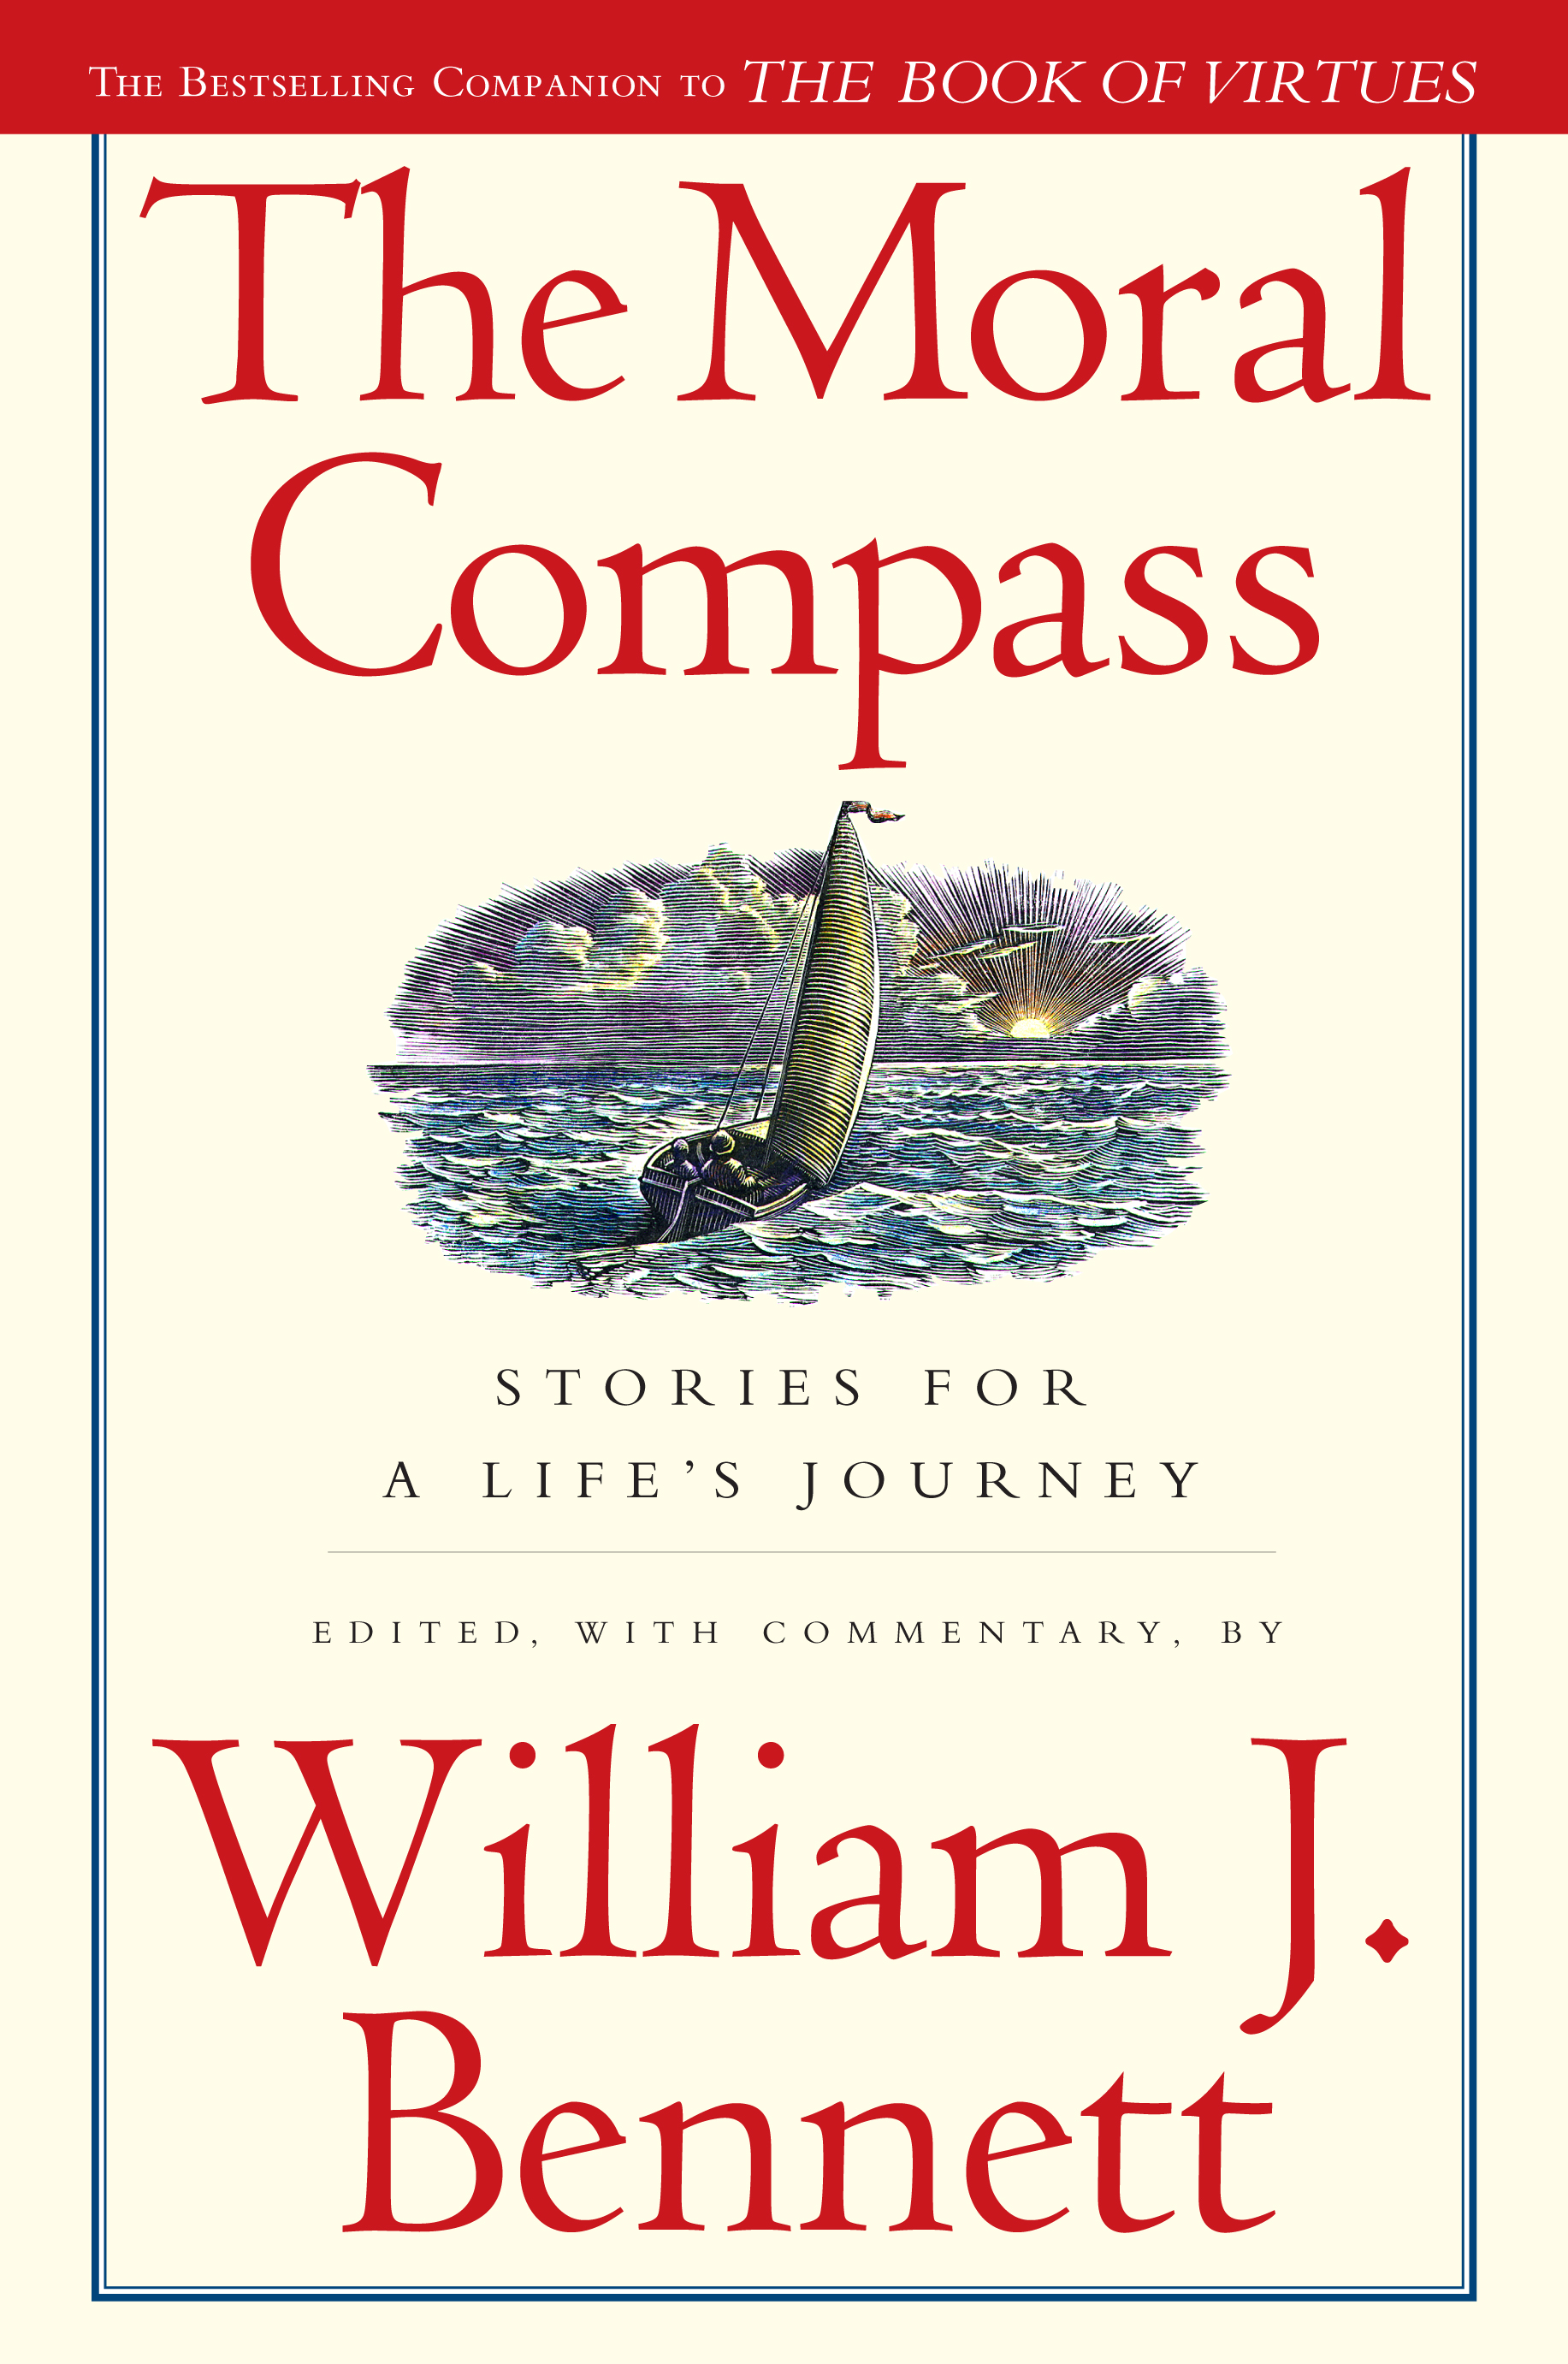 Book Cover Image (jpg): The Moral Compass